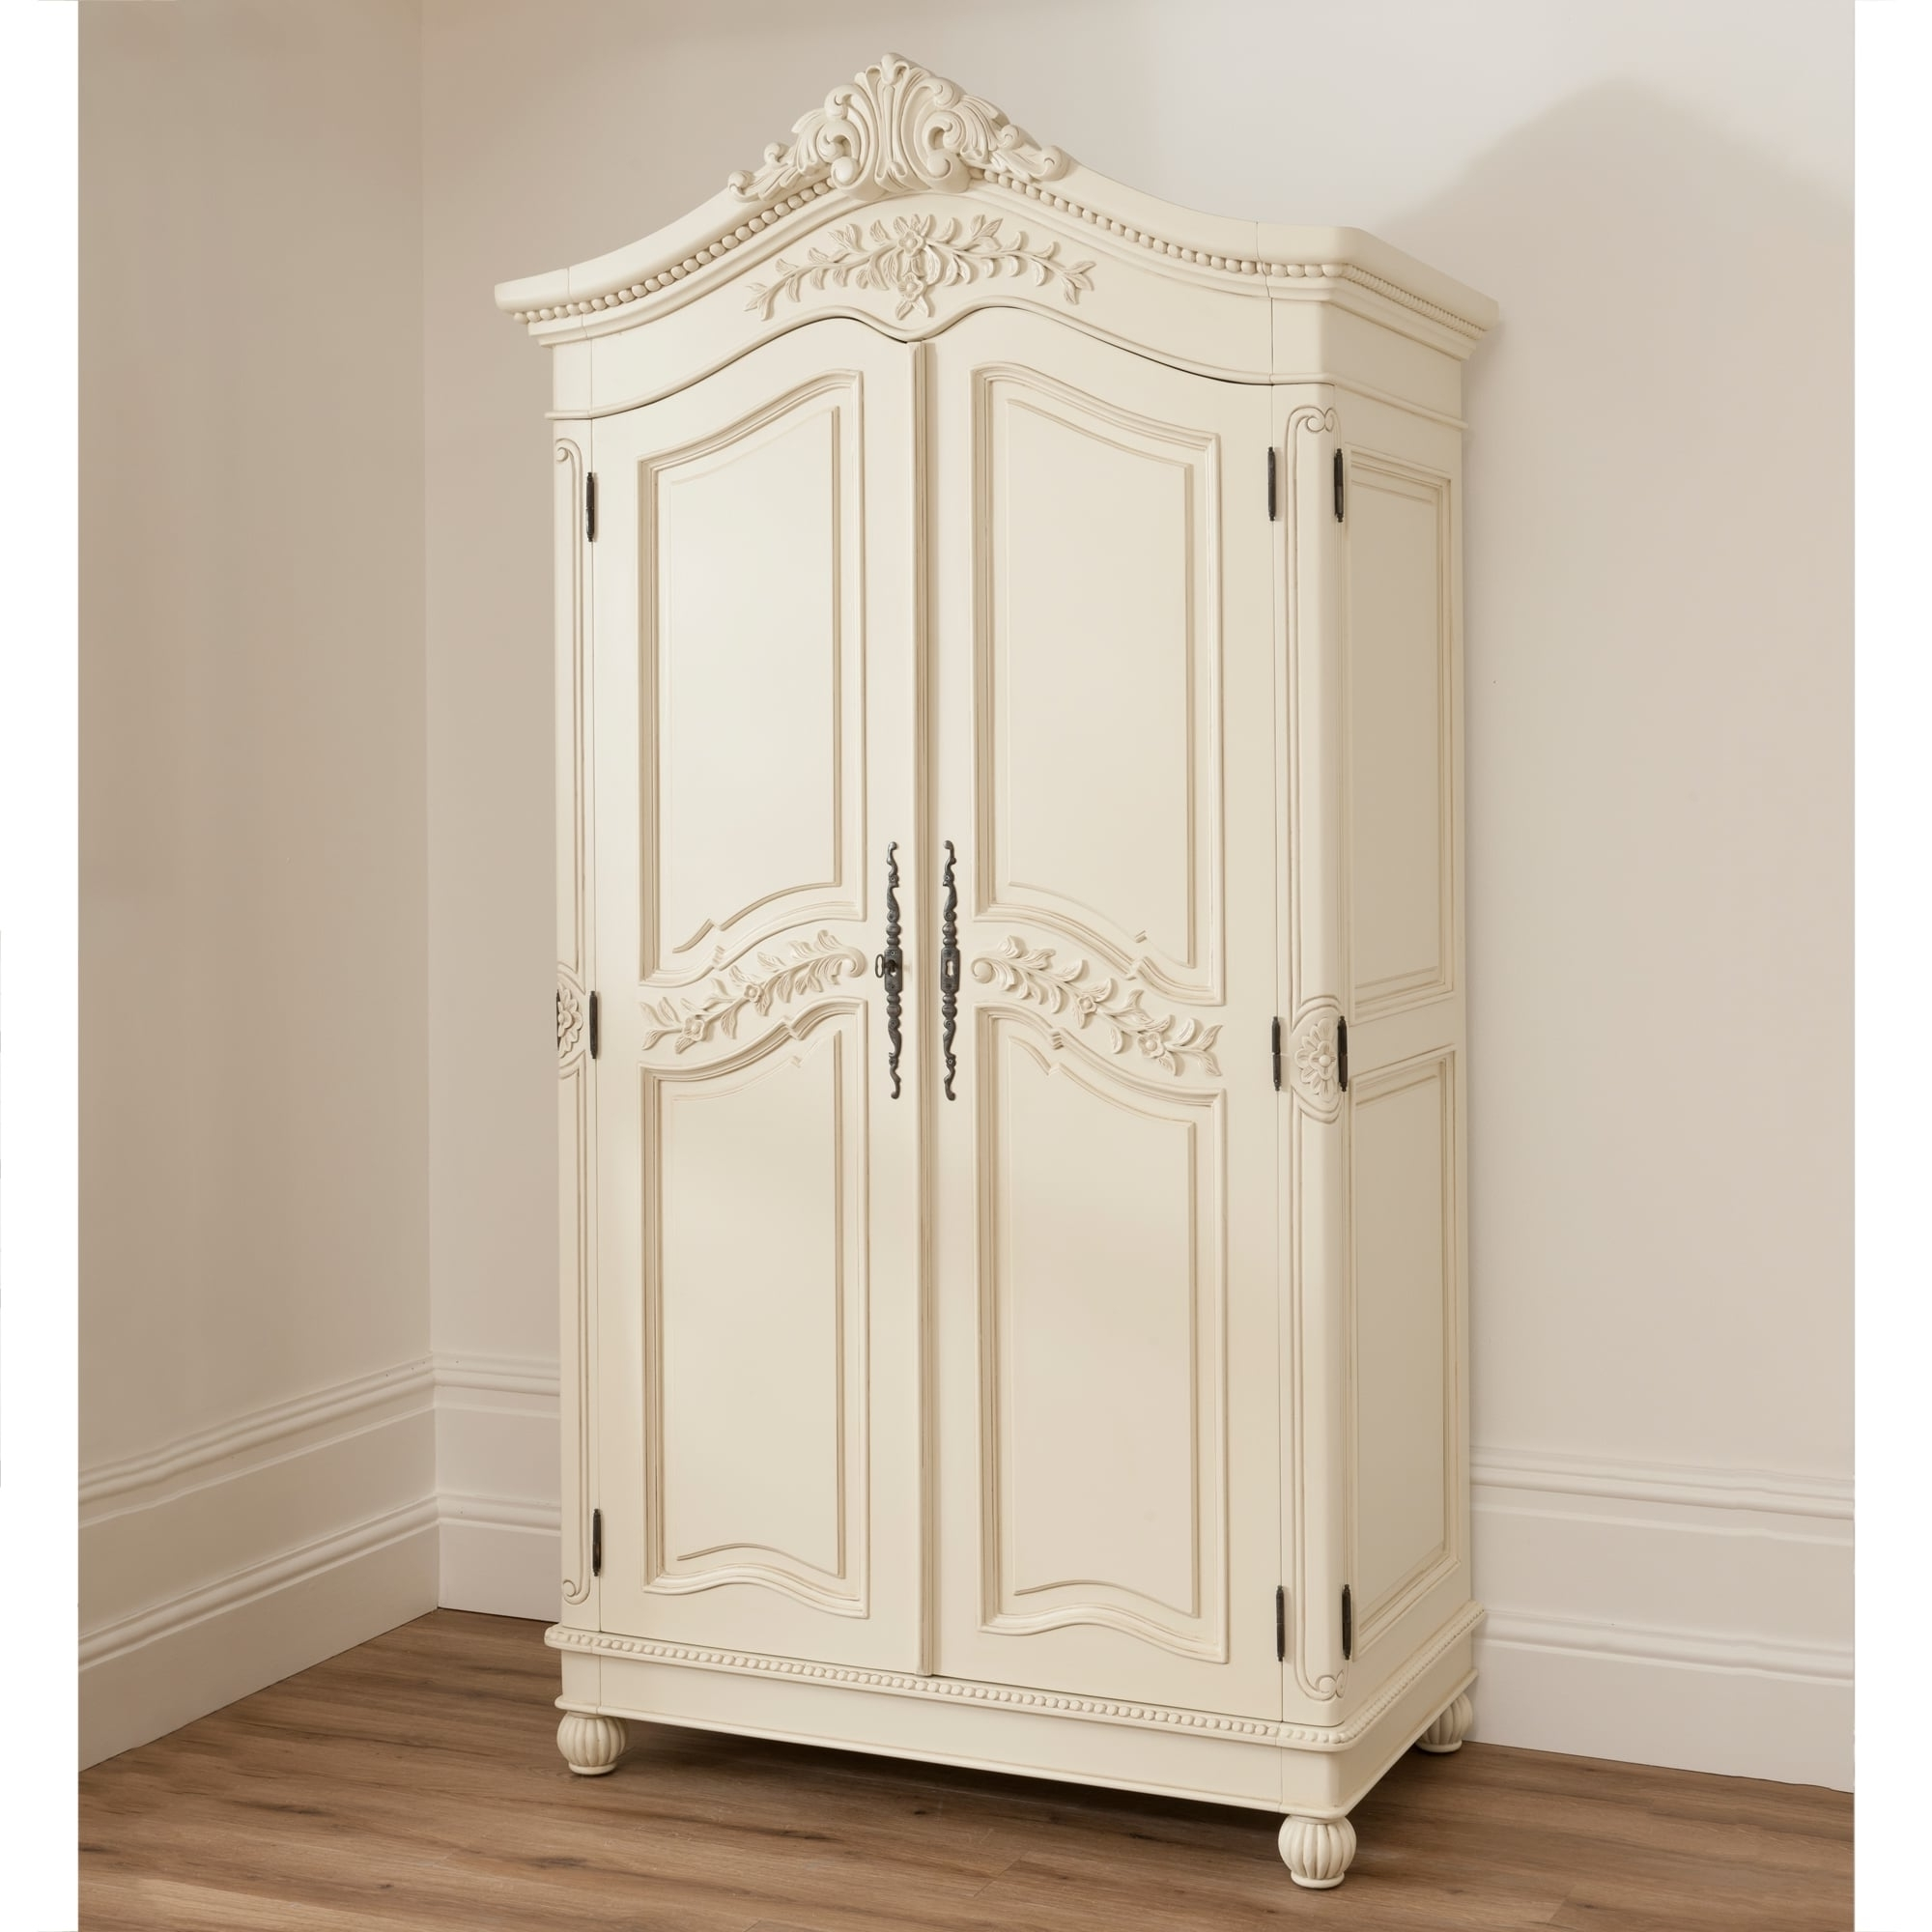 French Shabby Chic Wardrobes Throughout Well Known Bordeaux Ivory Shabby Chic Wardrobe (View 5 of 15)